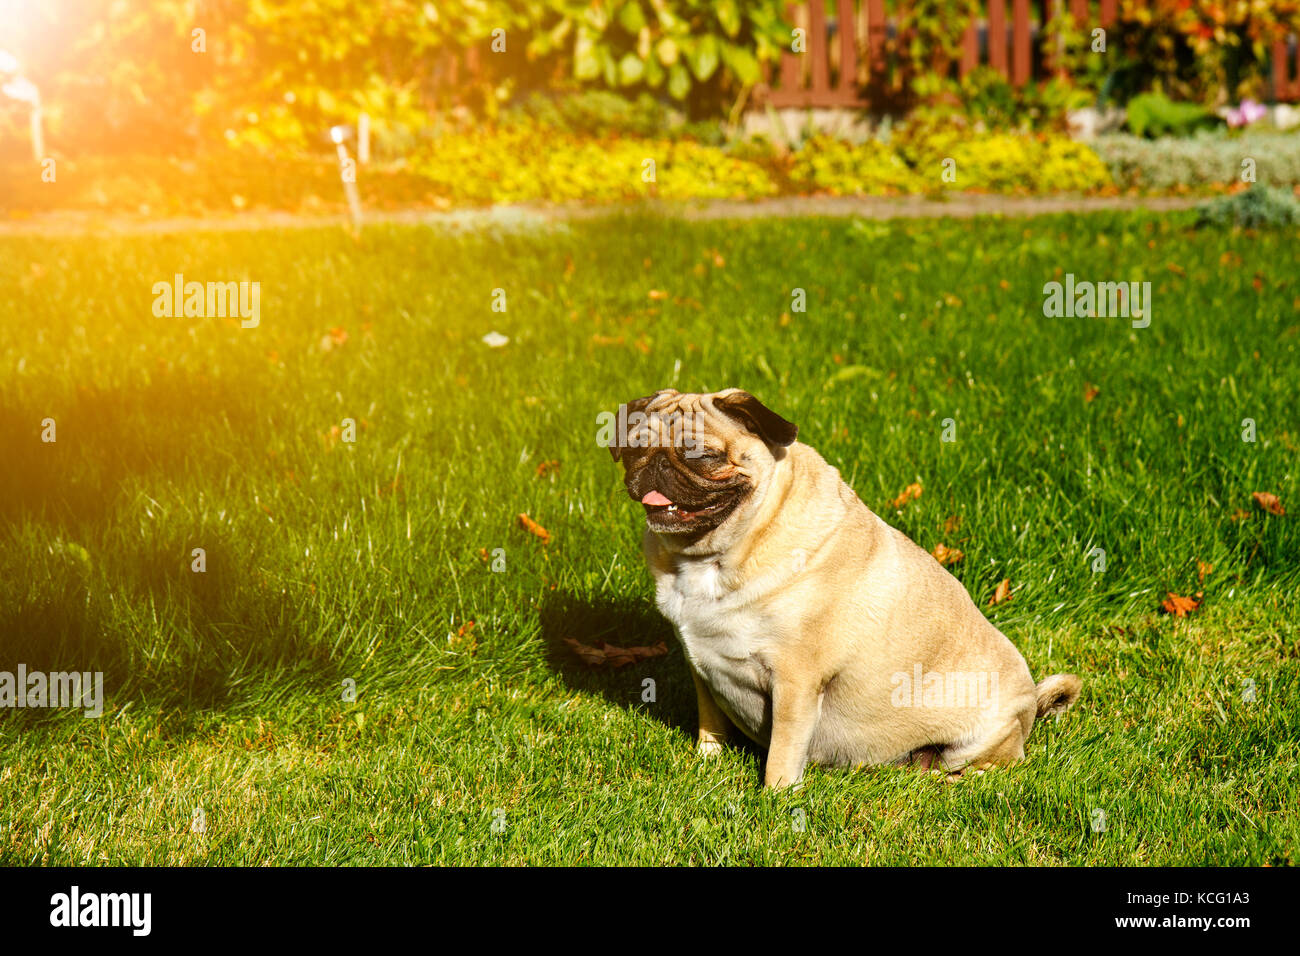 Pug dog in the garden - Stock Image